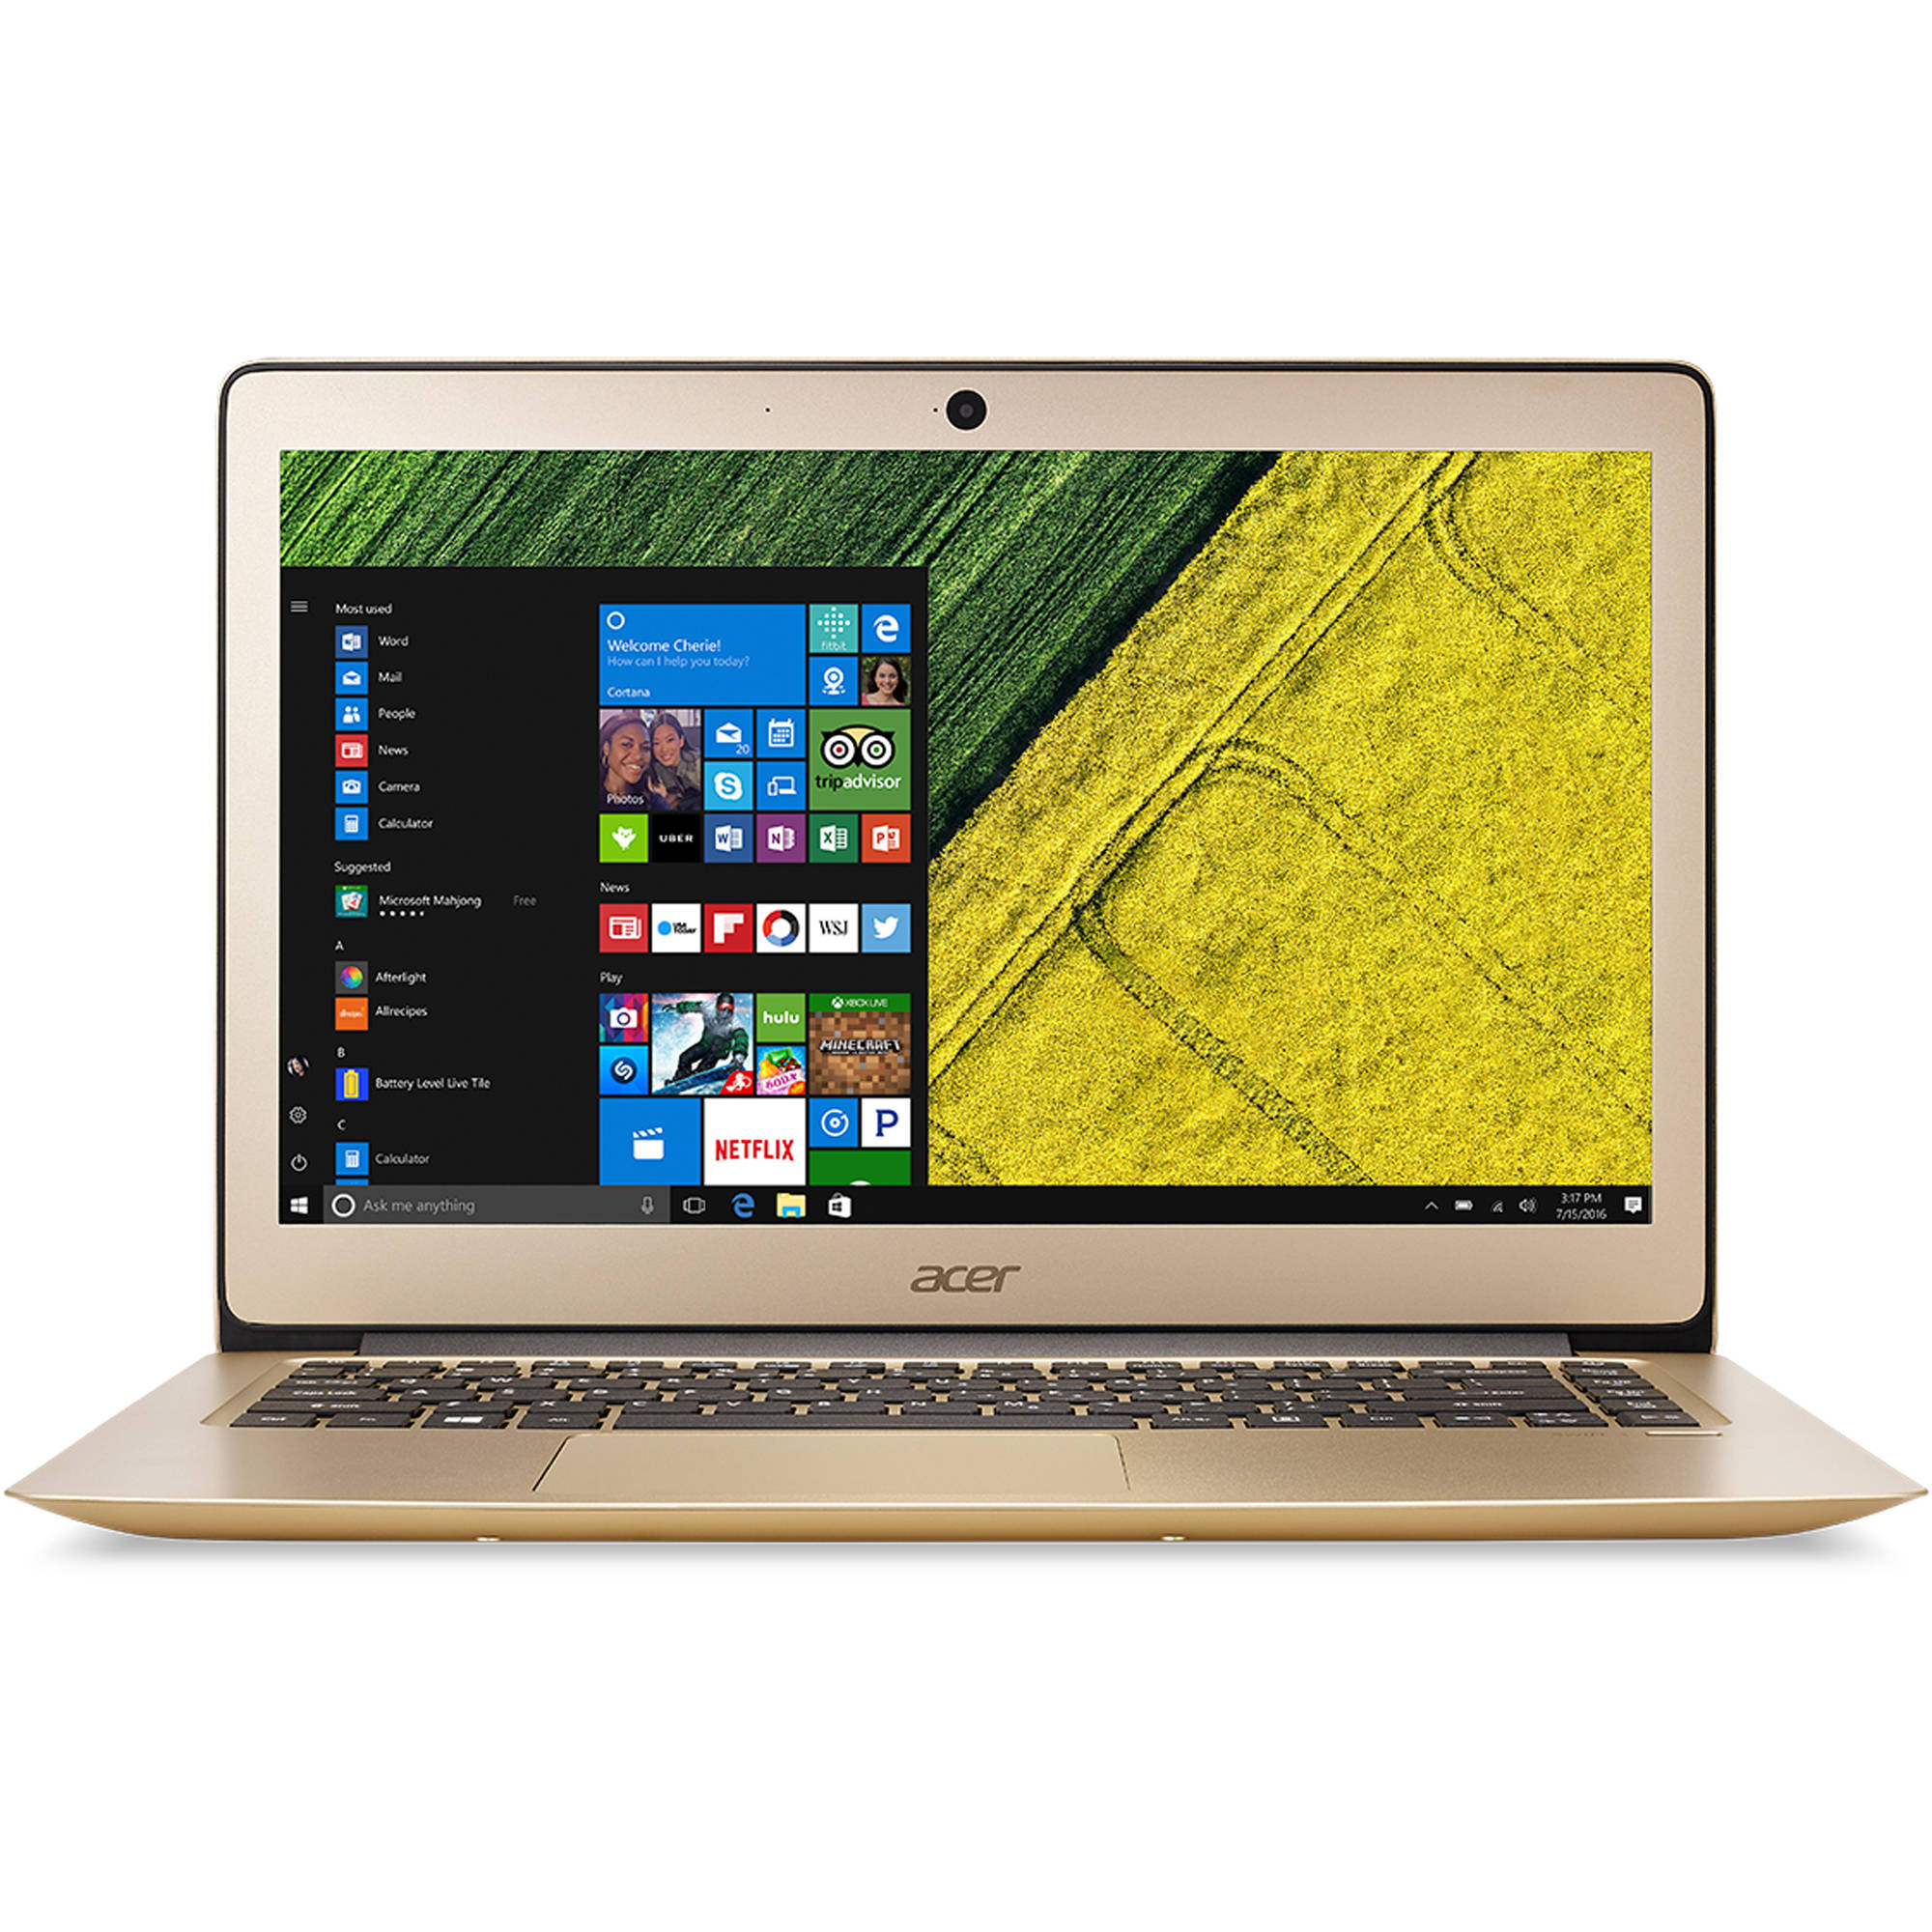 "Acer Swift 3 14.1"" FHD Laptop ( i7-6500U / 8GB / 256GB SSD)"